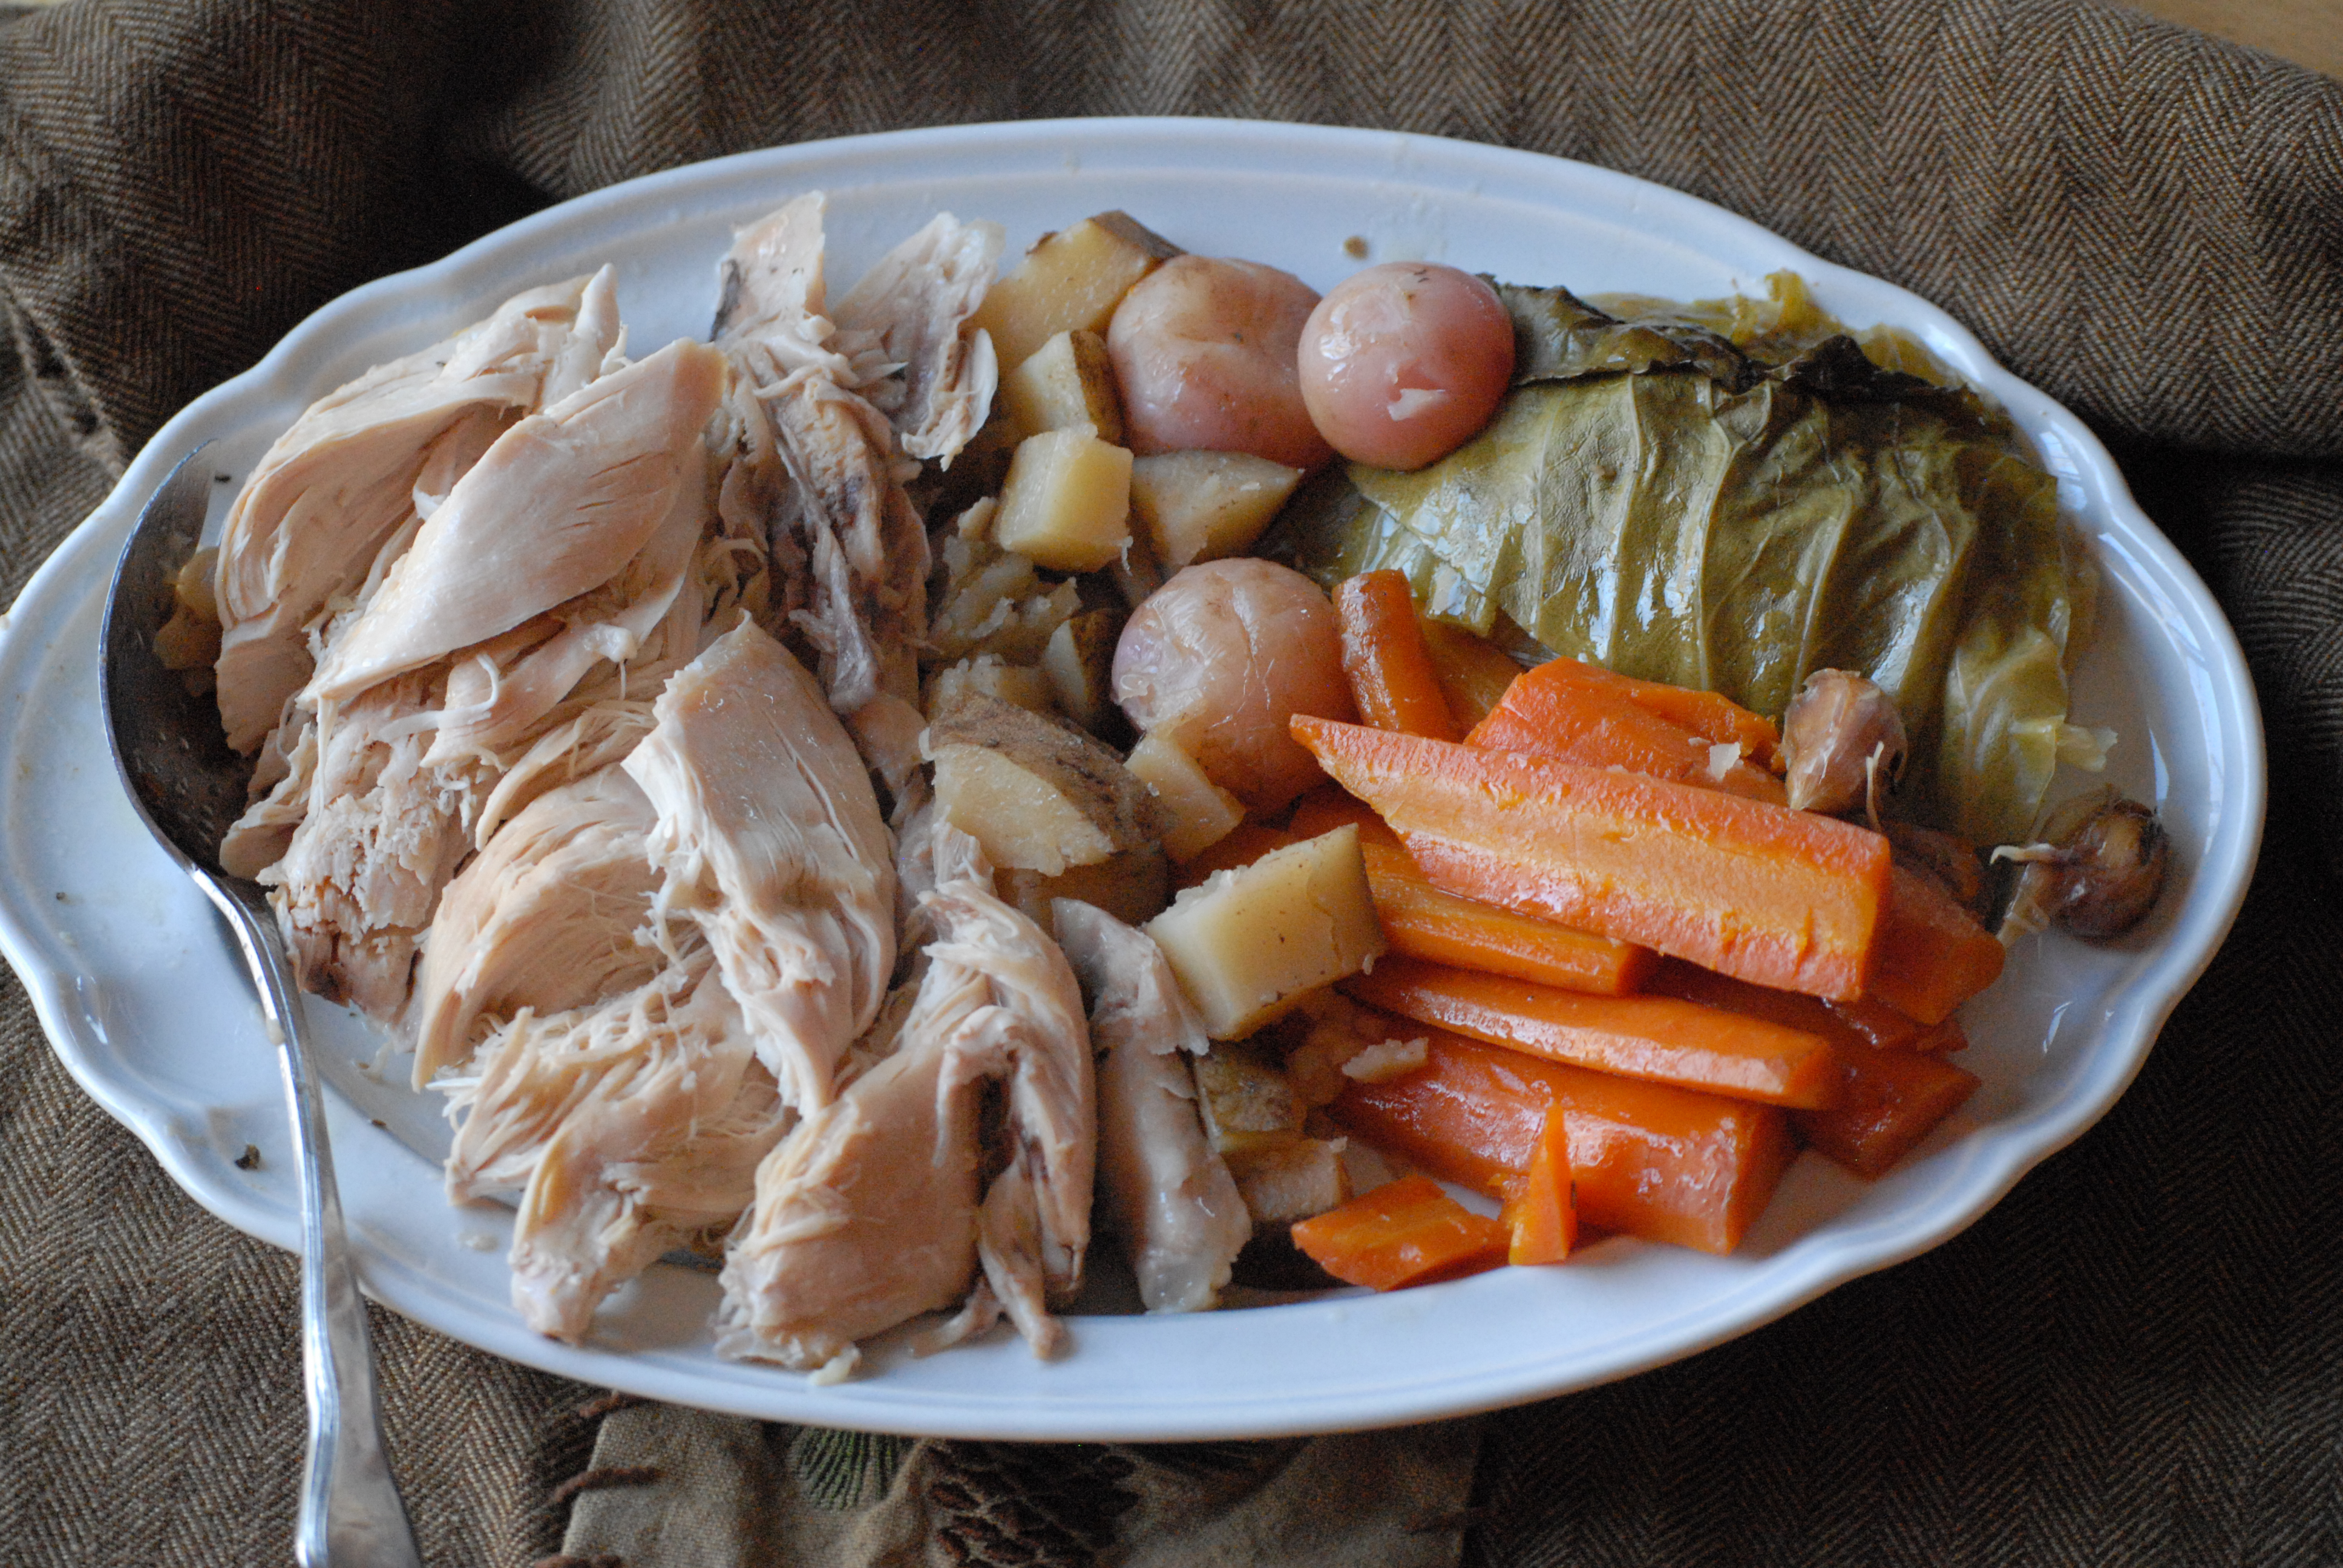 Crock Pot Roasted Chicken and Vegetables